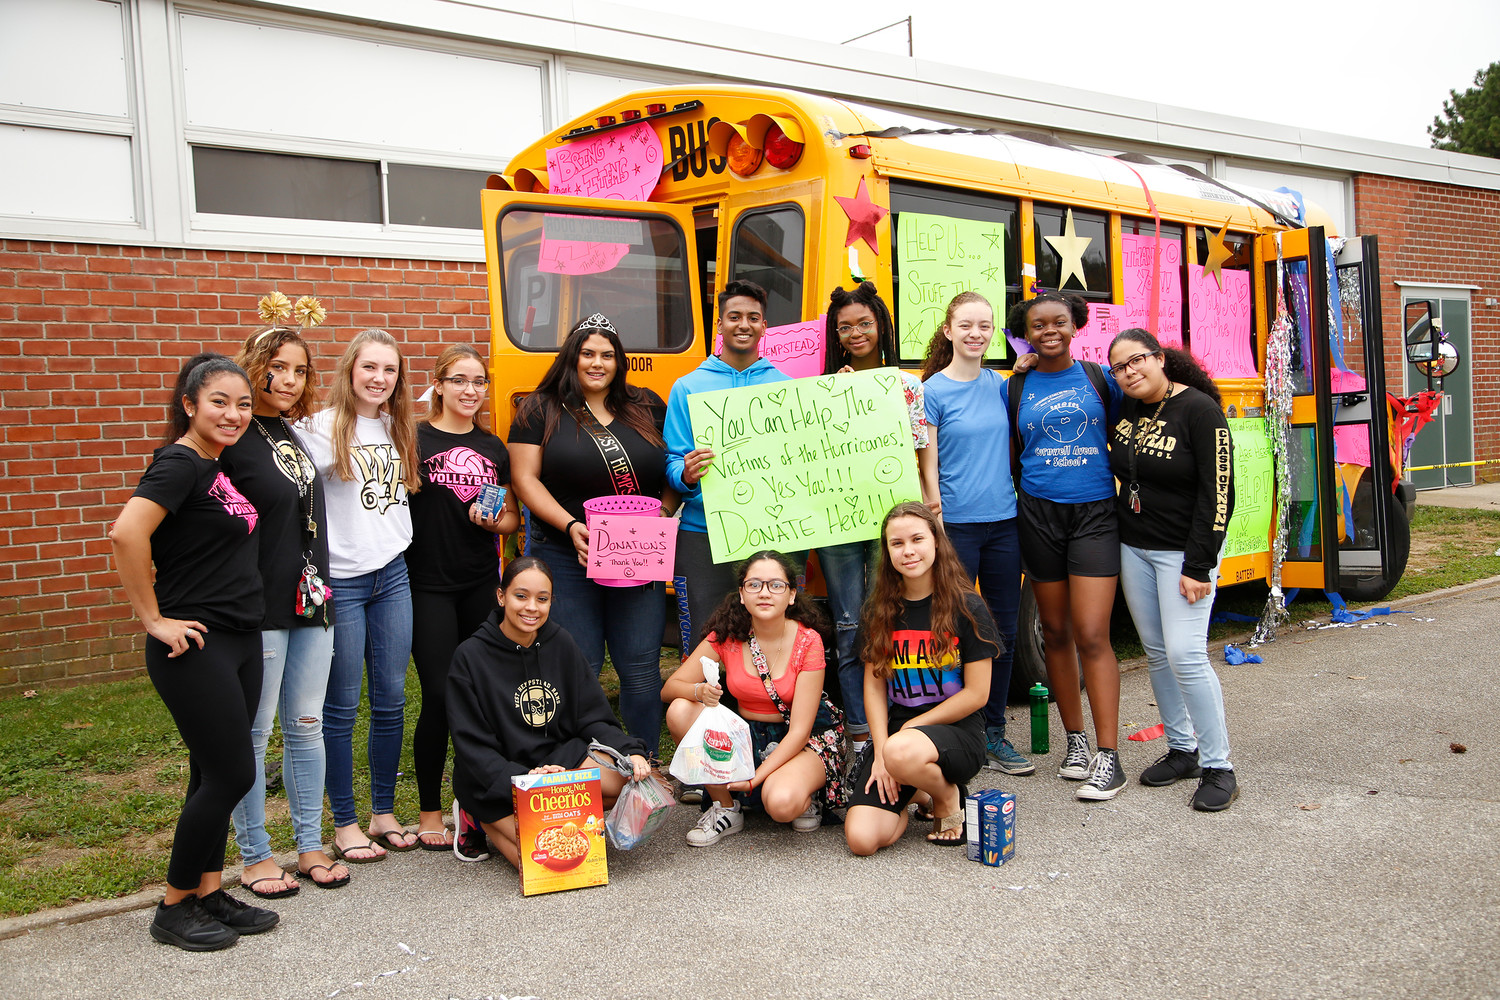 The West Hempstead High School Key Club collected food and donations for hurricane victims during the homecoming parade.